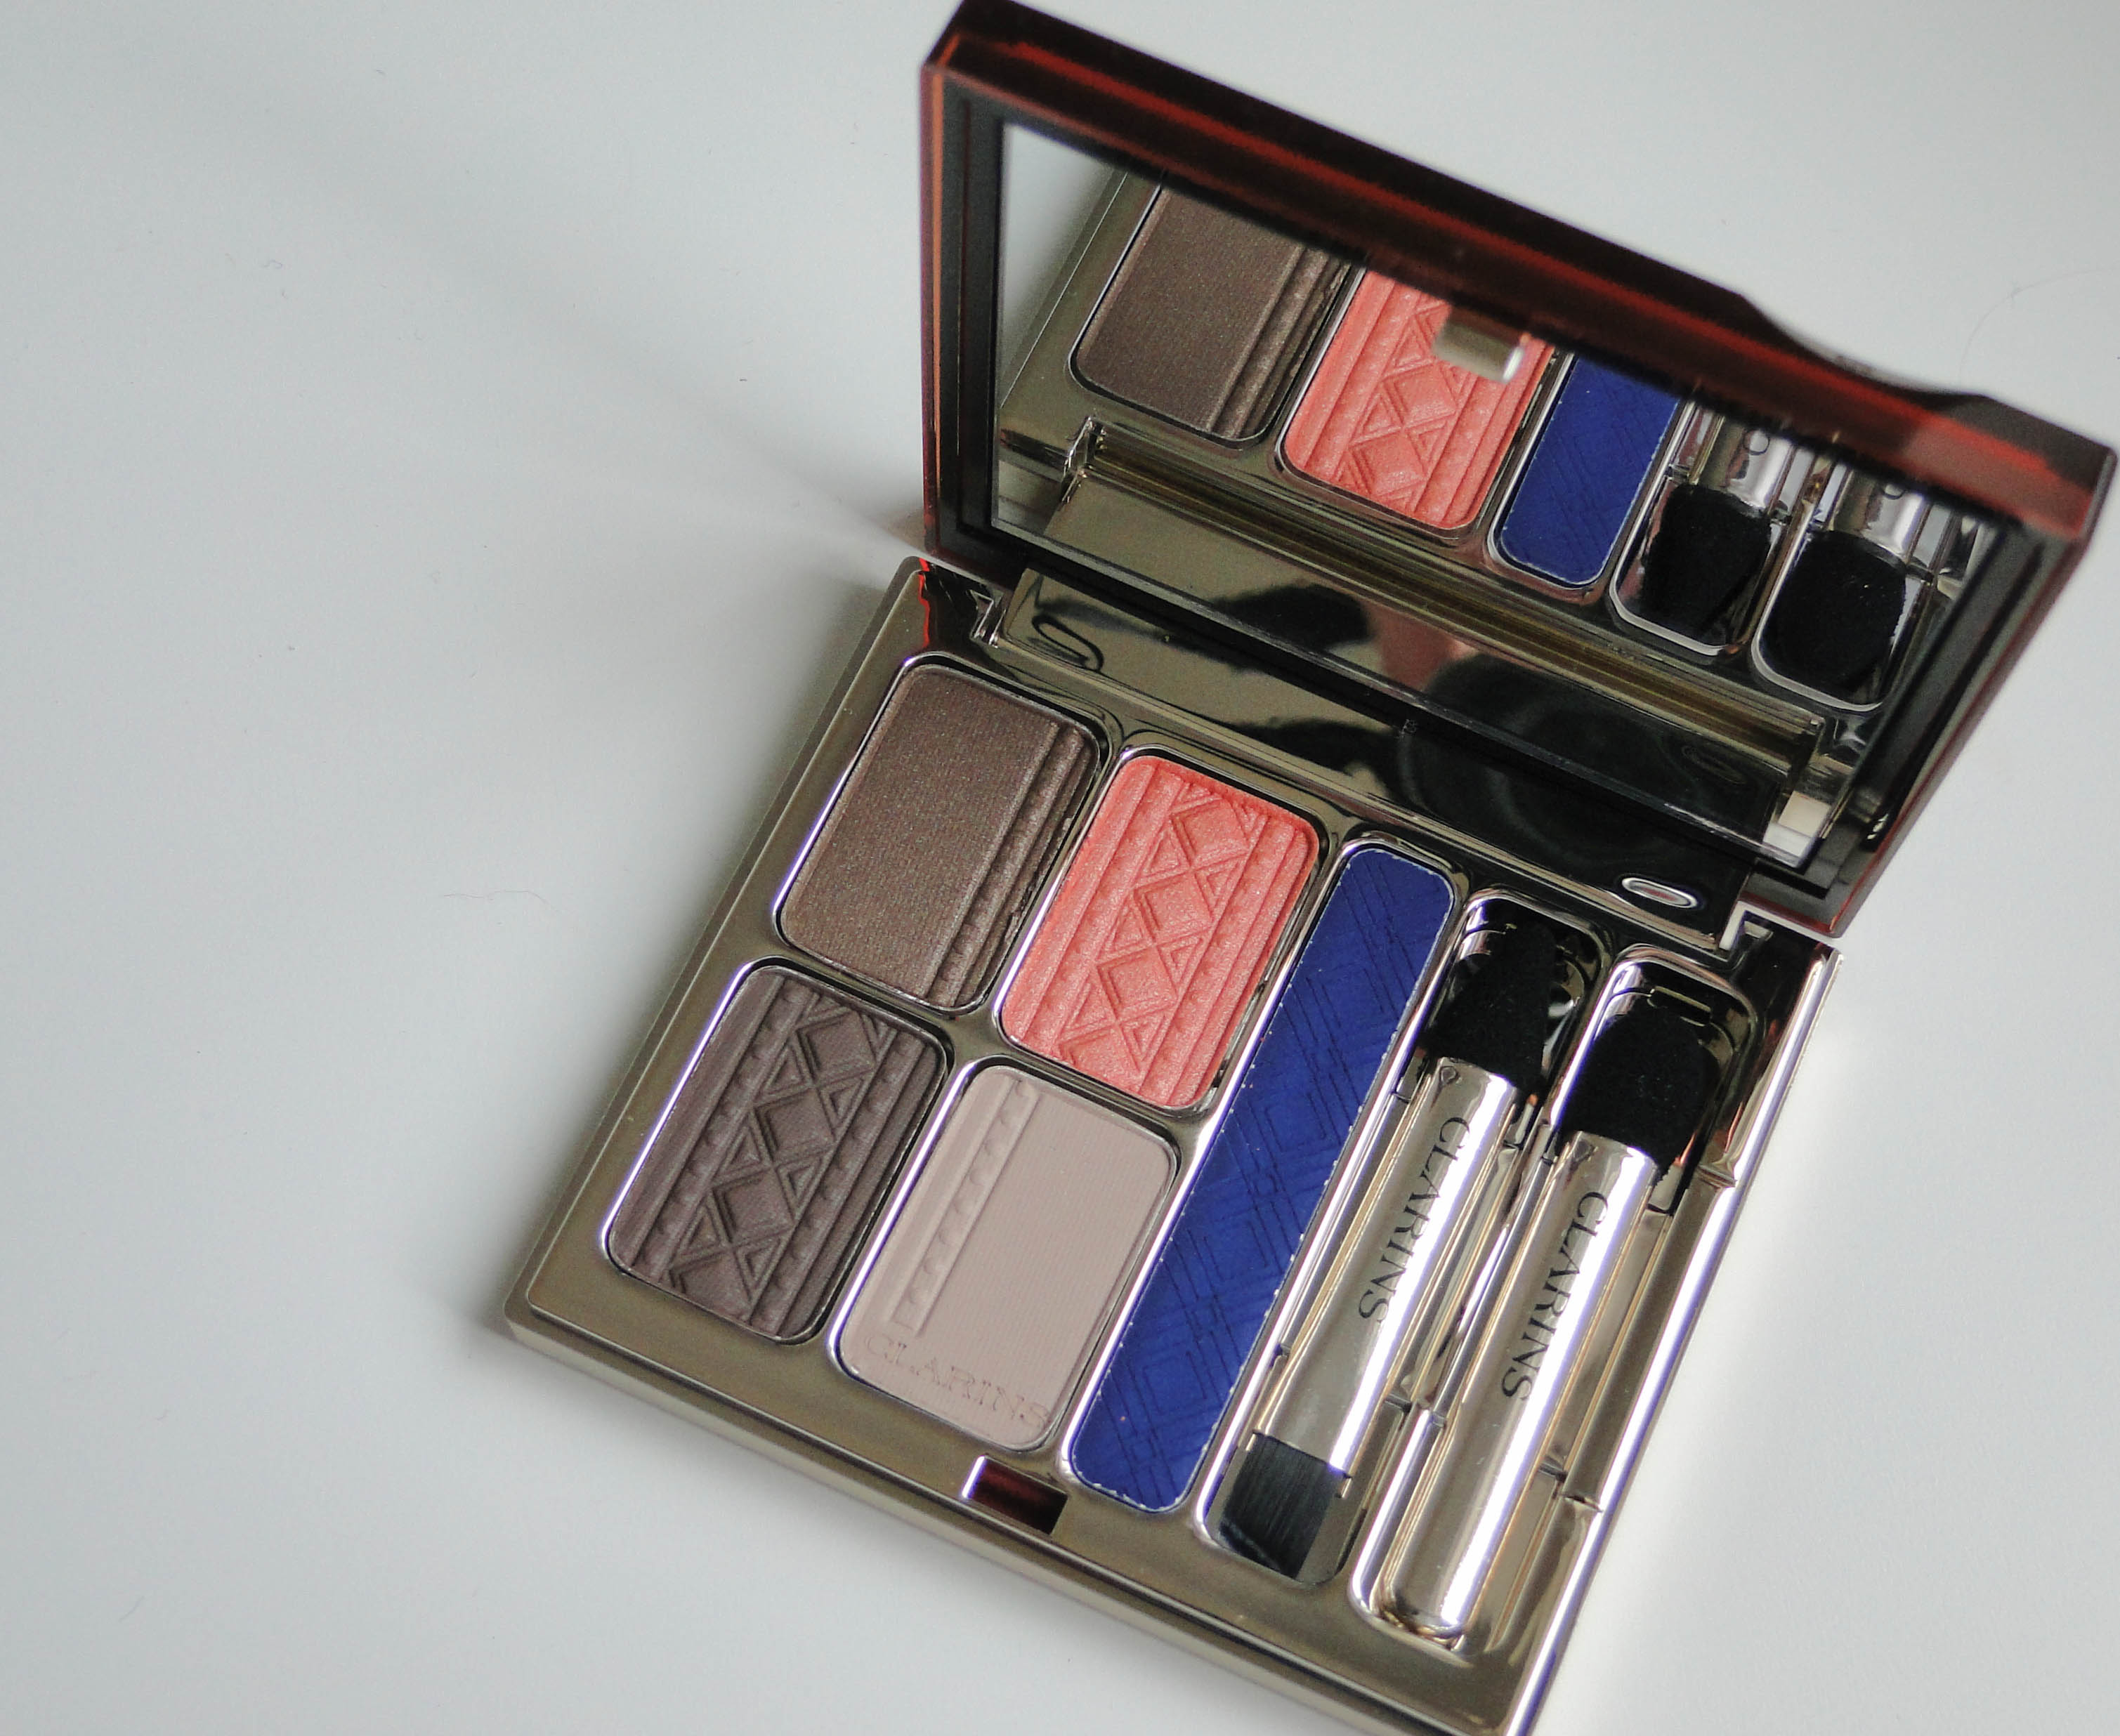 Clarins Color of Brazil Eye Quartet 1